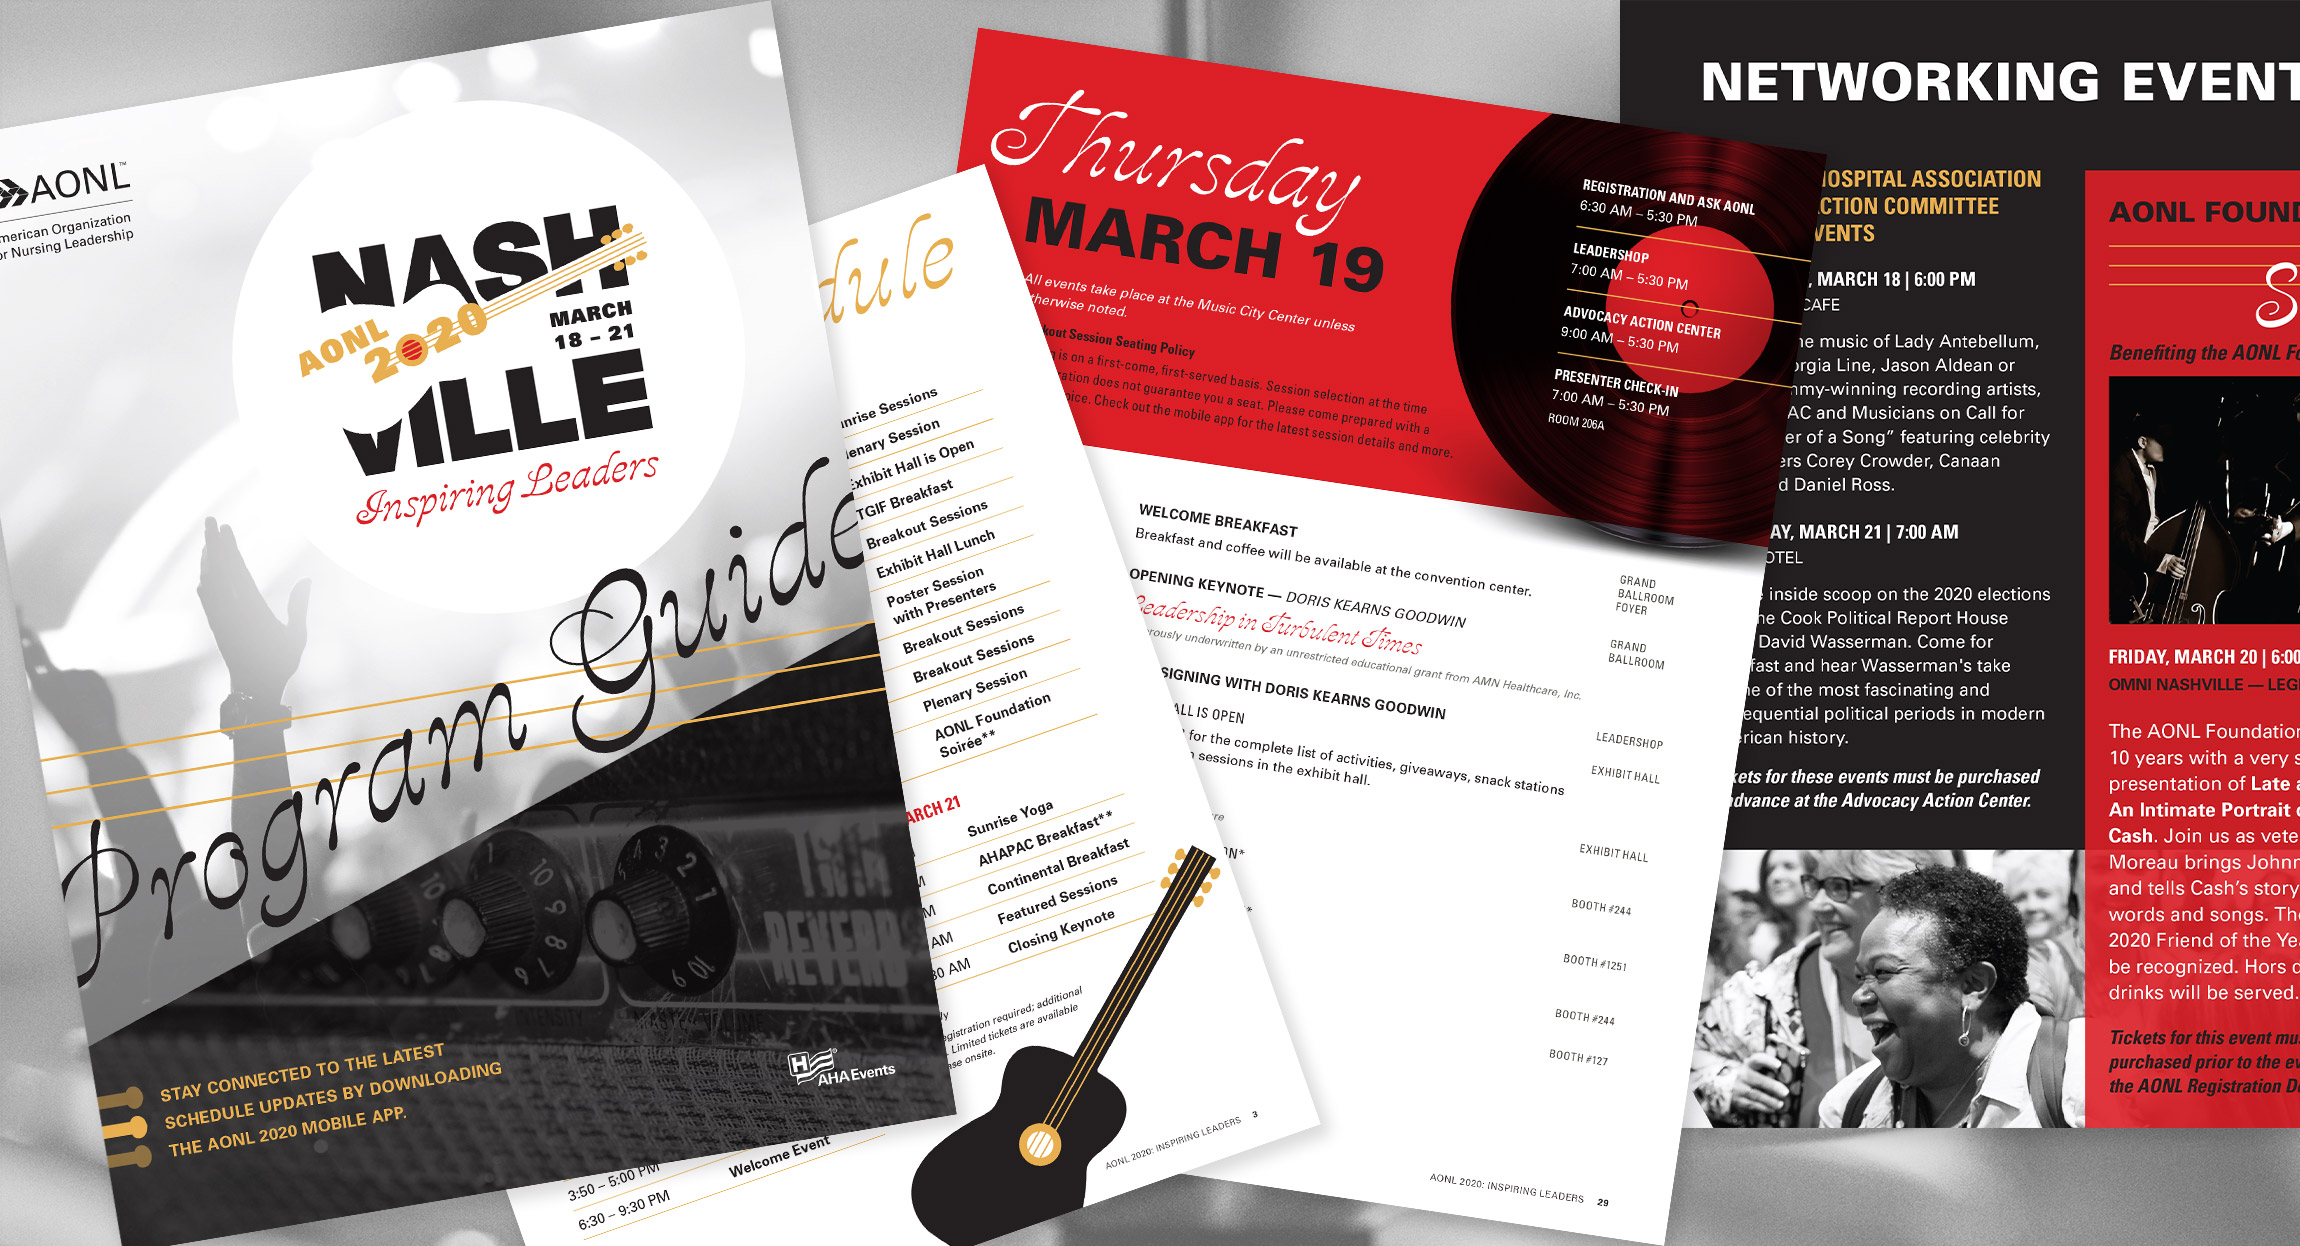 AONL 2020 Annual Conference Program Guide Design and Layout